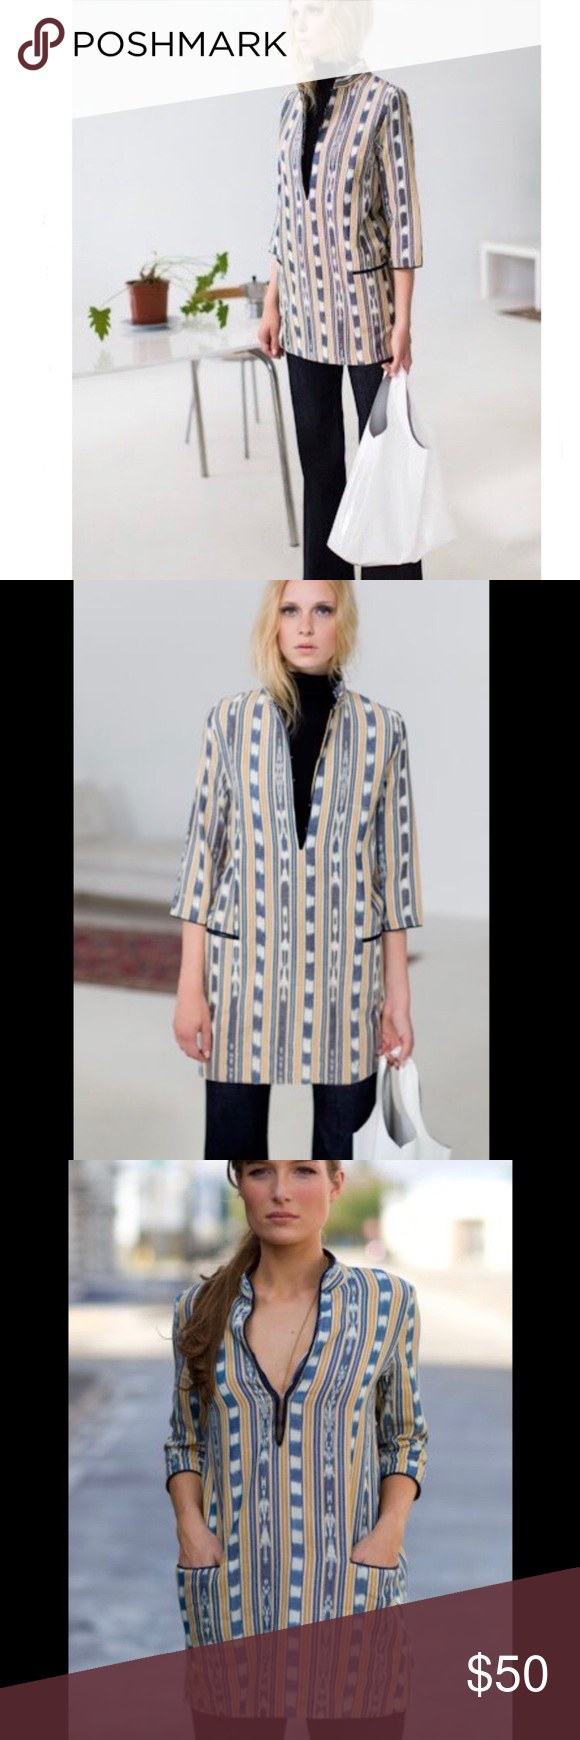 """Emerson Fry Ikat tunic Ikat tunic by cult designer Emerson Fry. In gorgeous yellows and blues. 100% cotton body with silk piping. Hook and eye closure at neck. Measurements: pit to pit 17.5"""", sleeves 17"""", length 28"""". Emerson Fry Tops #emersonfry"""